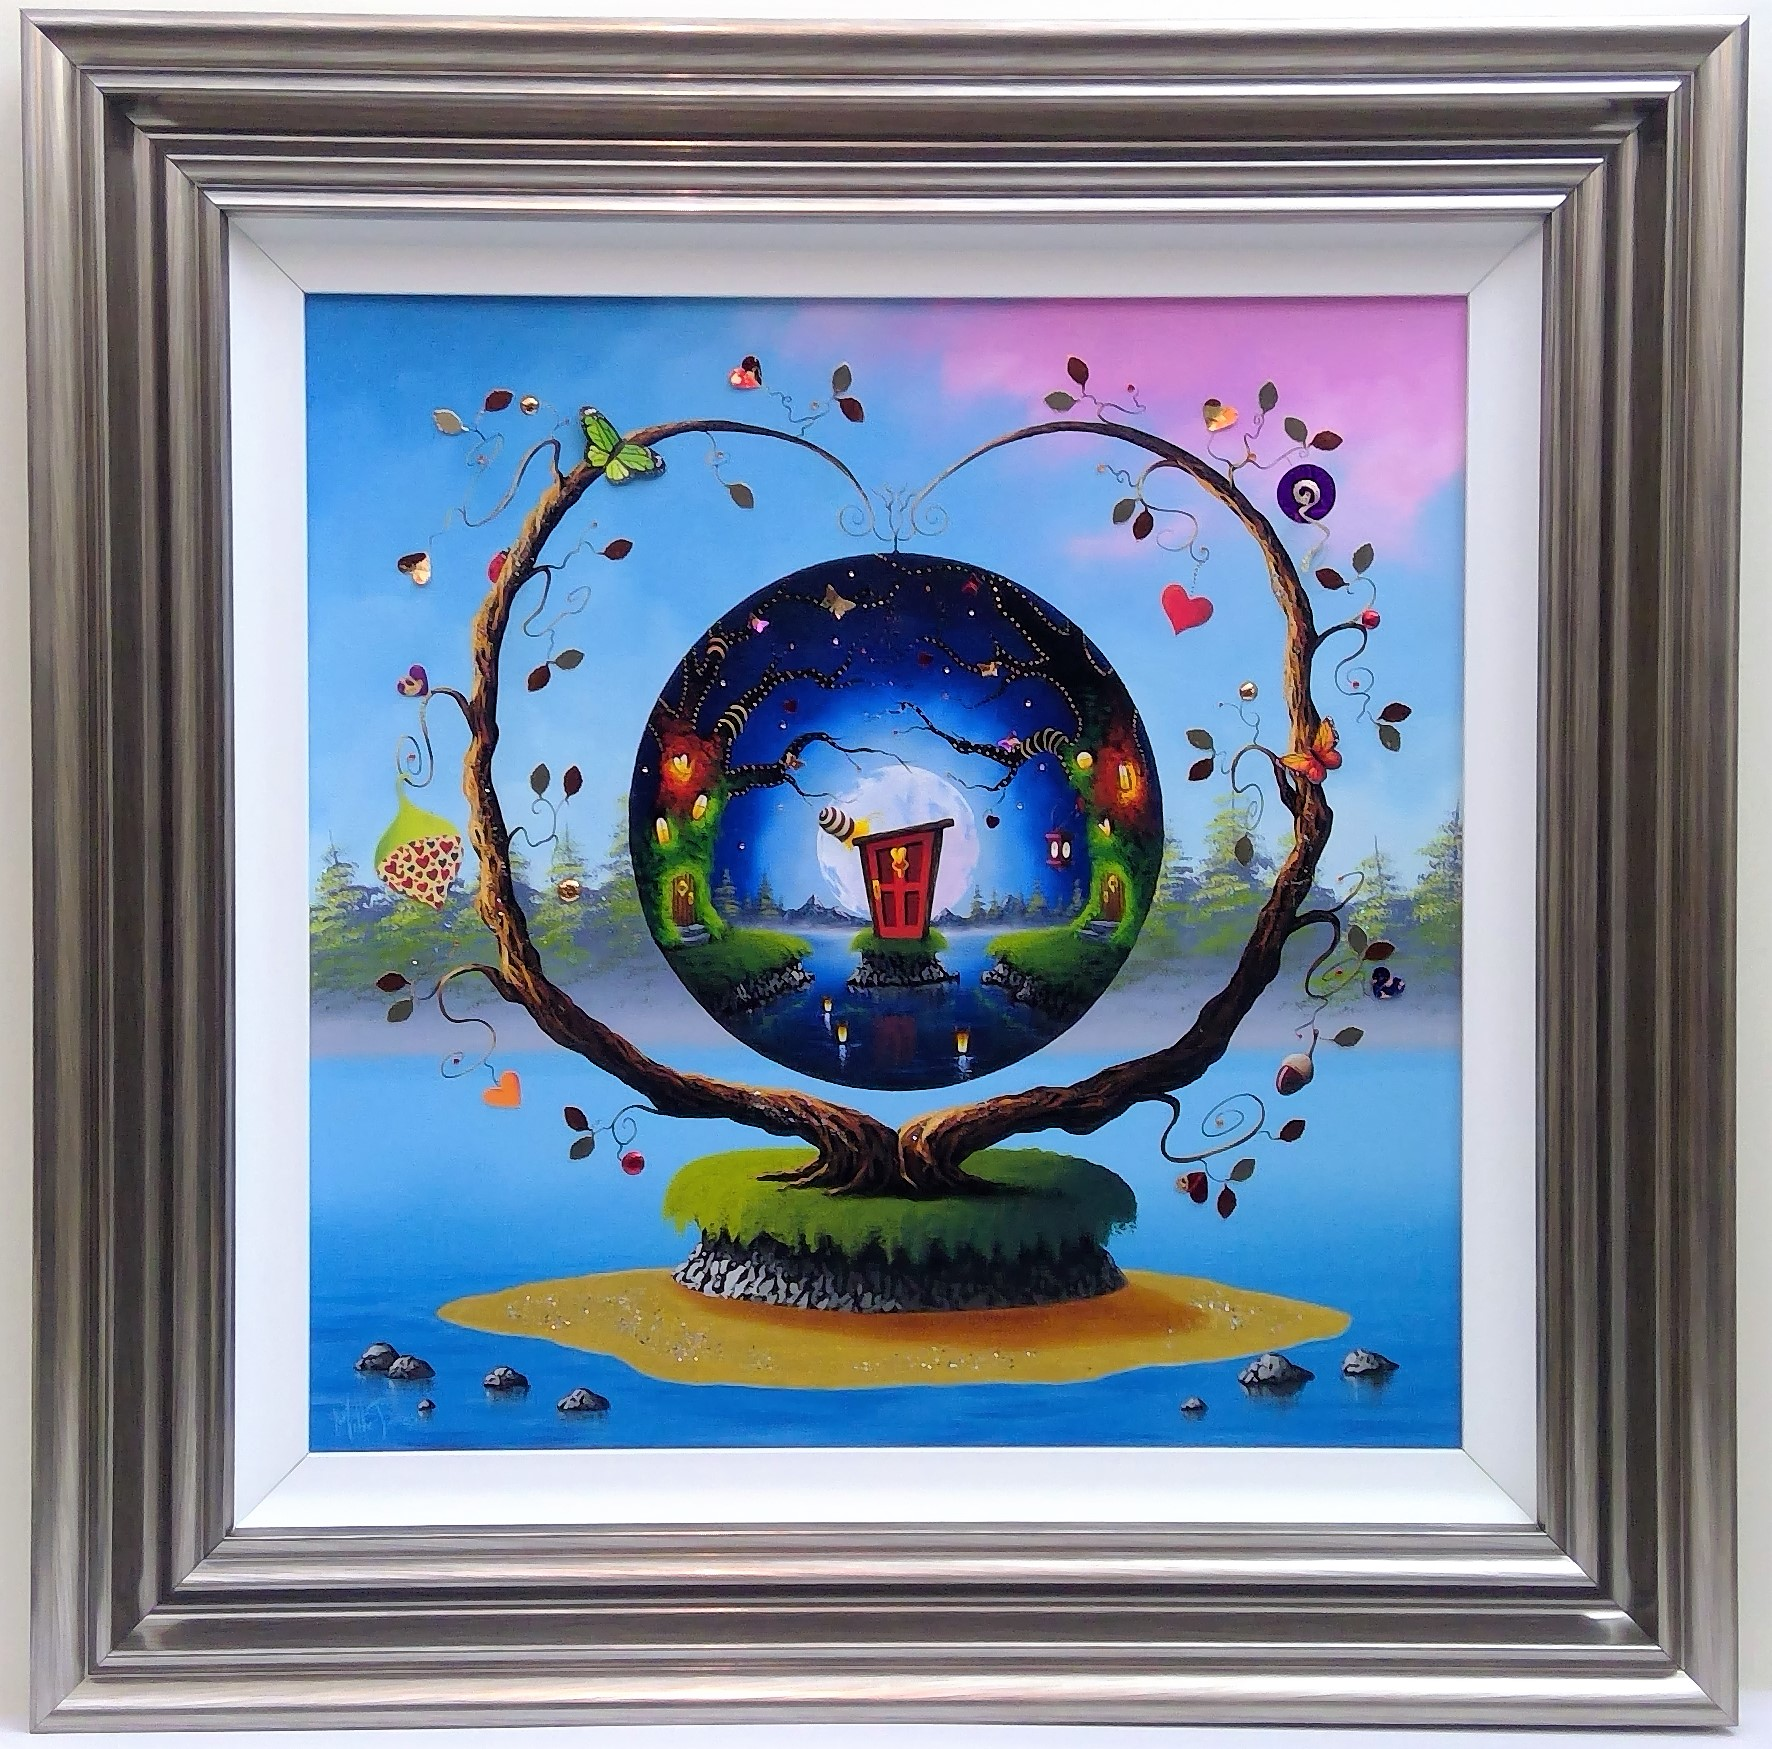 "'World's Within' - Framed size 28""x28""RRP £795NOW £395SOLD"